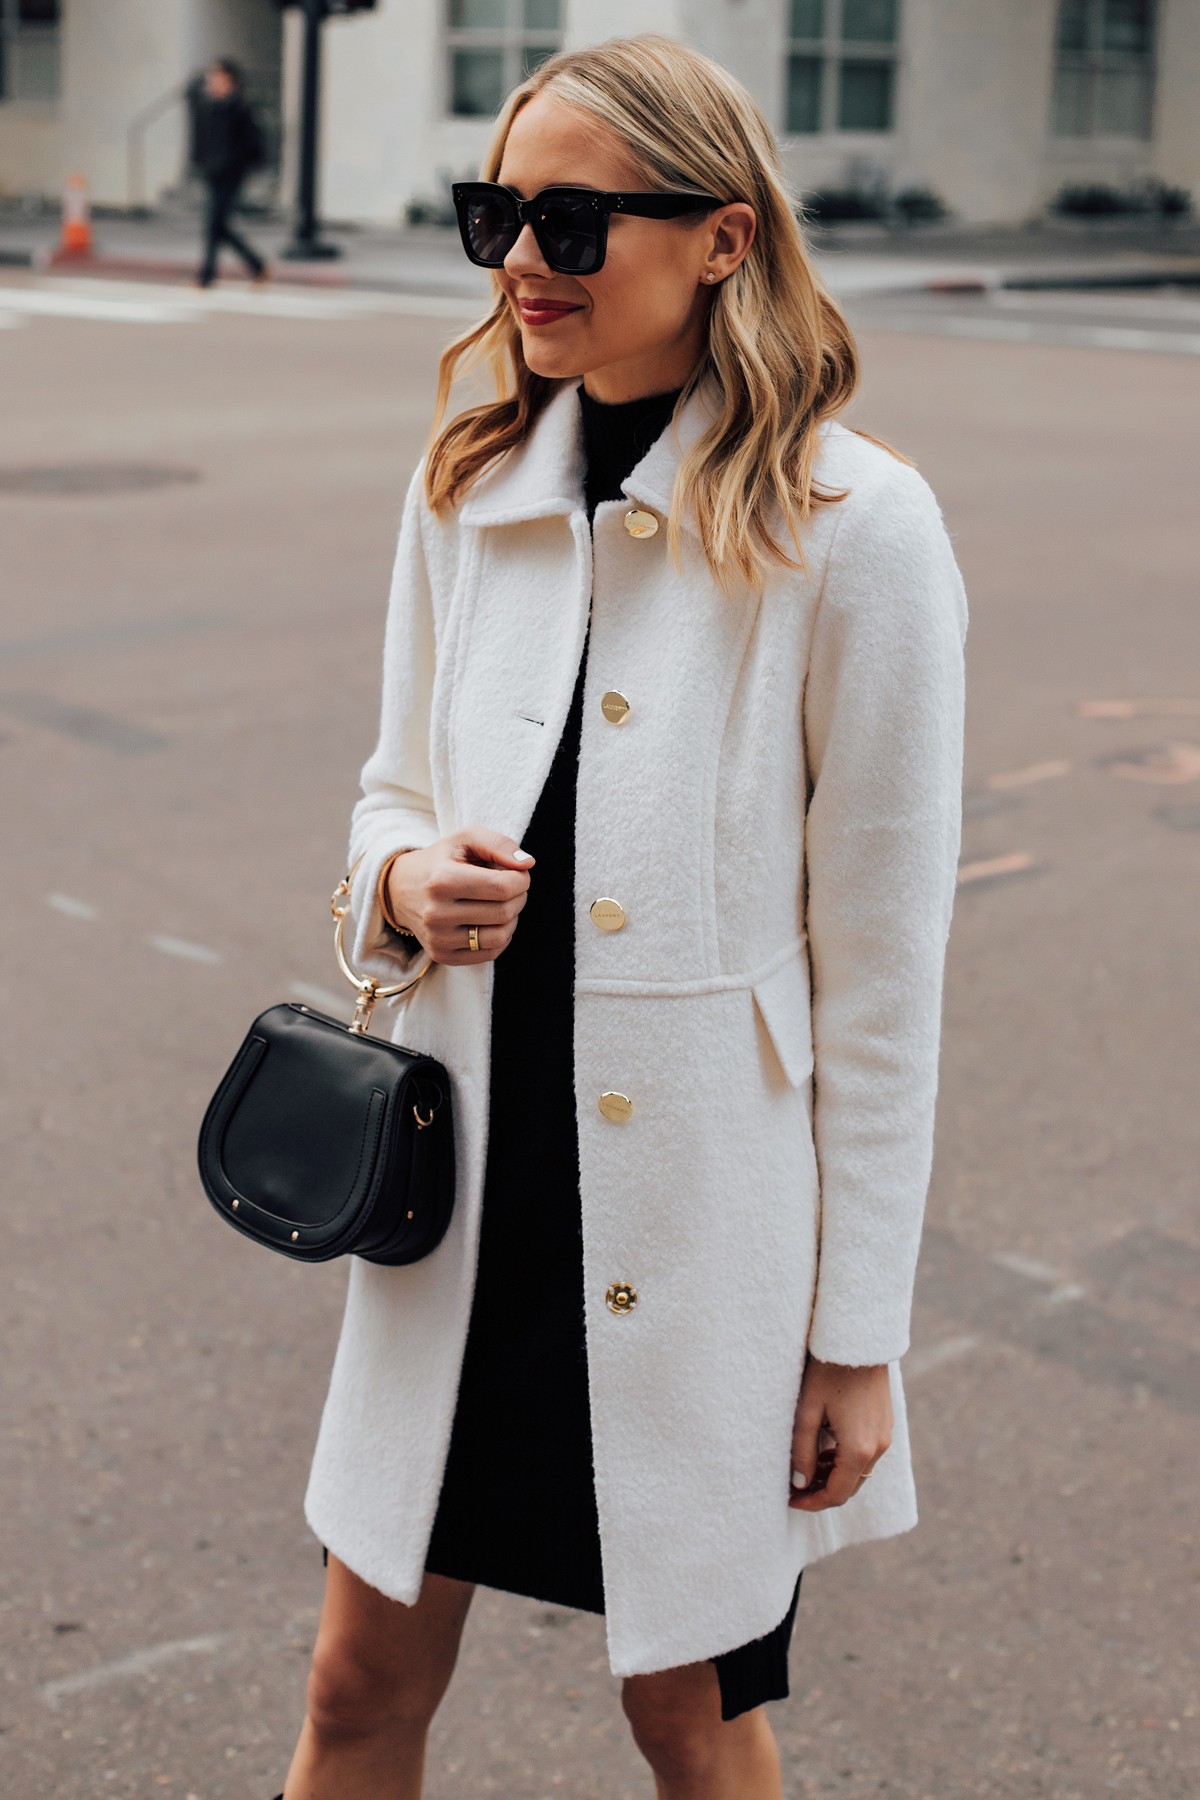 Blonde Woman Wearing Winter White Coat Black Sweater Dress Black Clutch Handbag Fashion Jackson San Diego Fashion Blogger Holiday Style